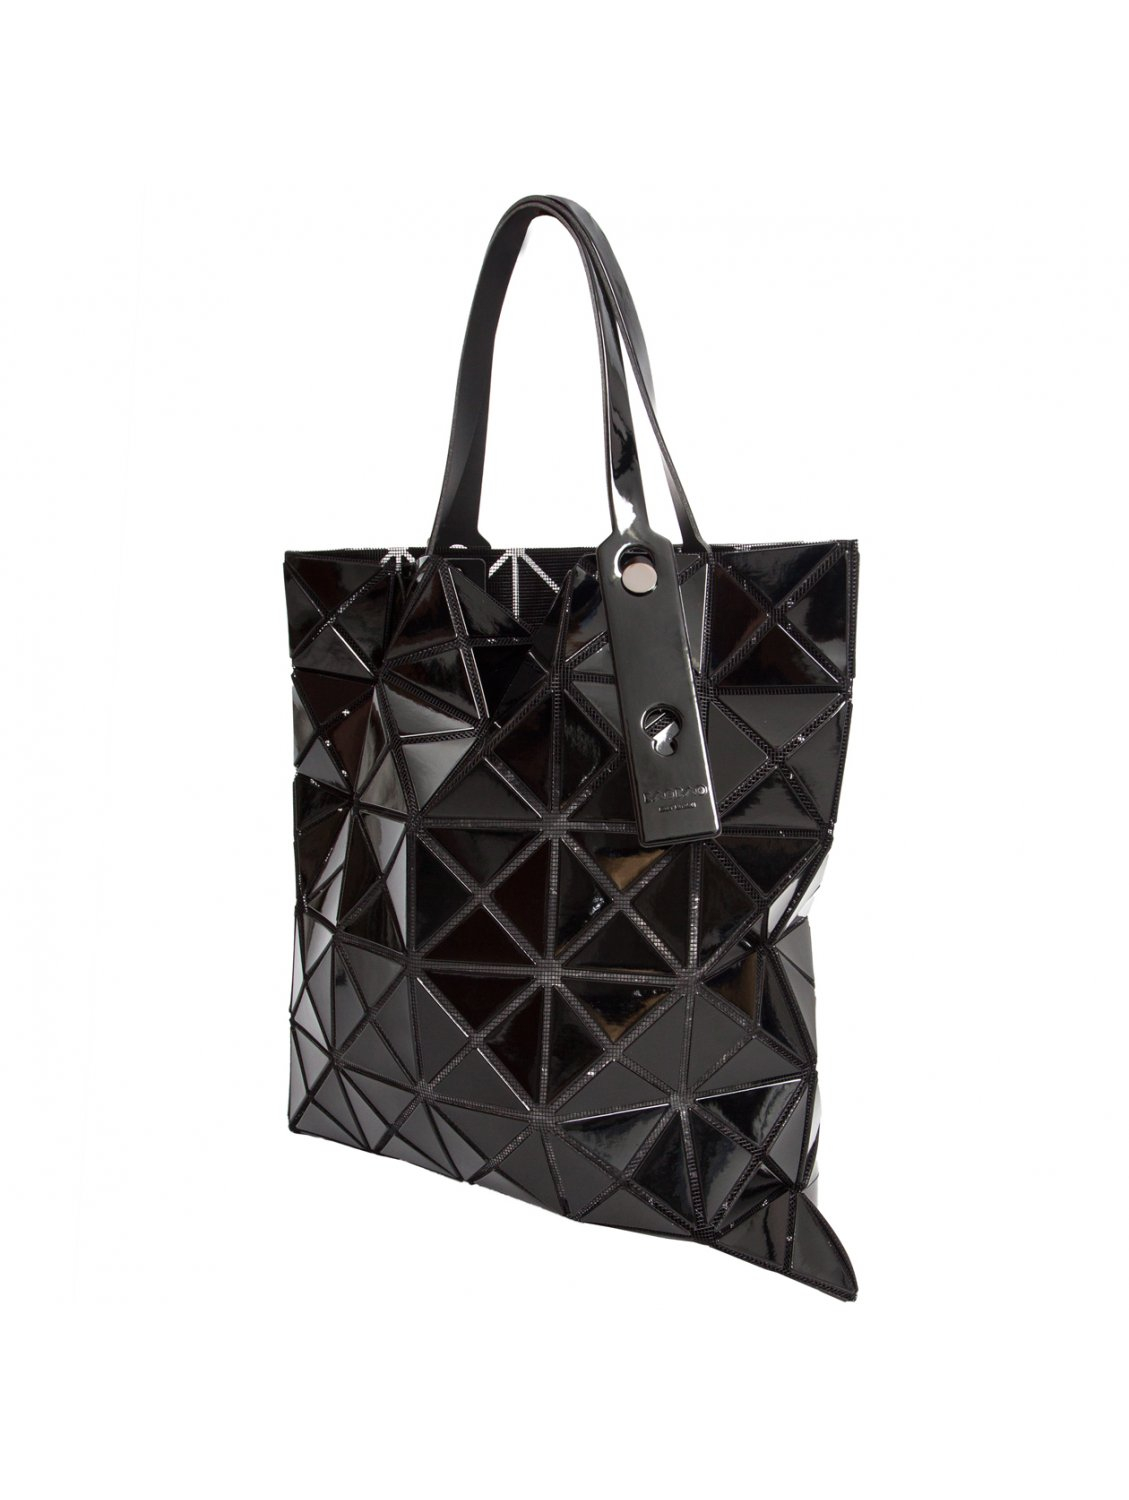 fbf4dcf2f9f8 Gallery. Previously sold at  Hervia · Women s Shopper Bags Women s Bao Bao  Issey Miyake Prism ...